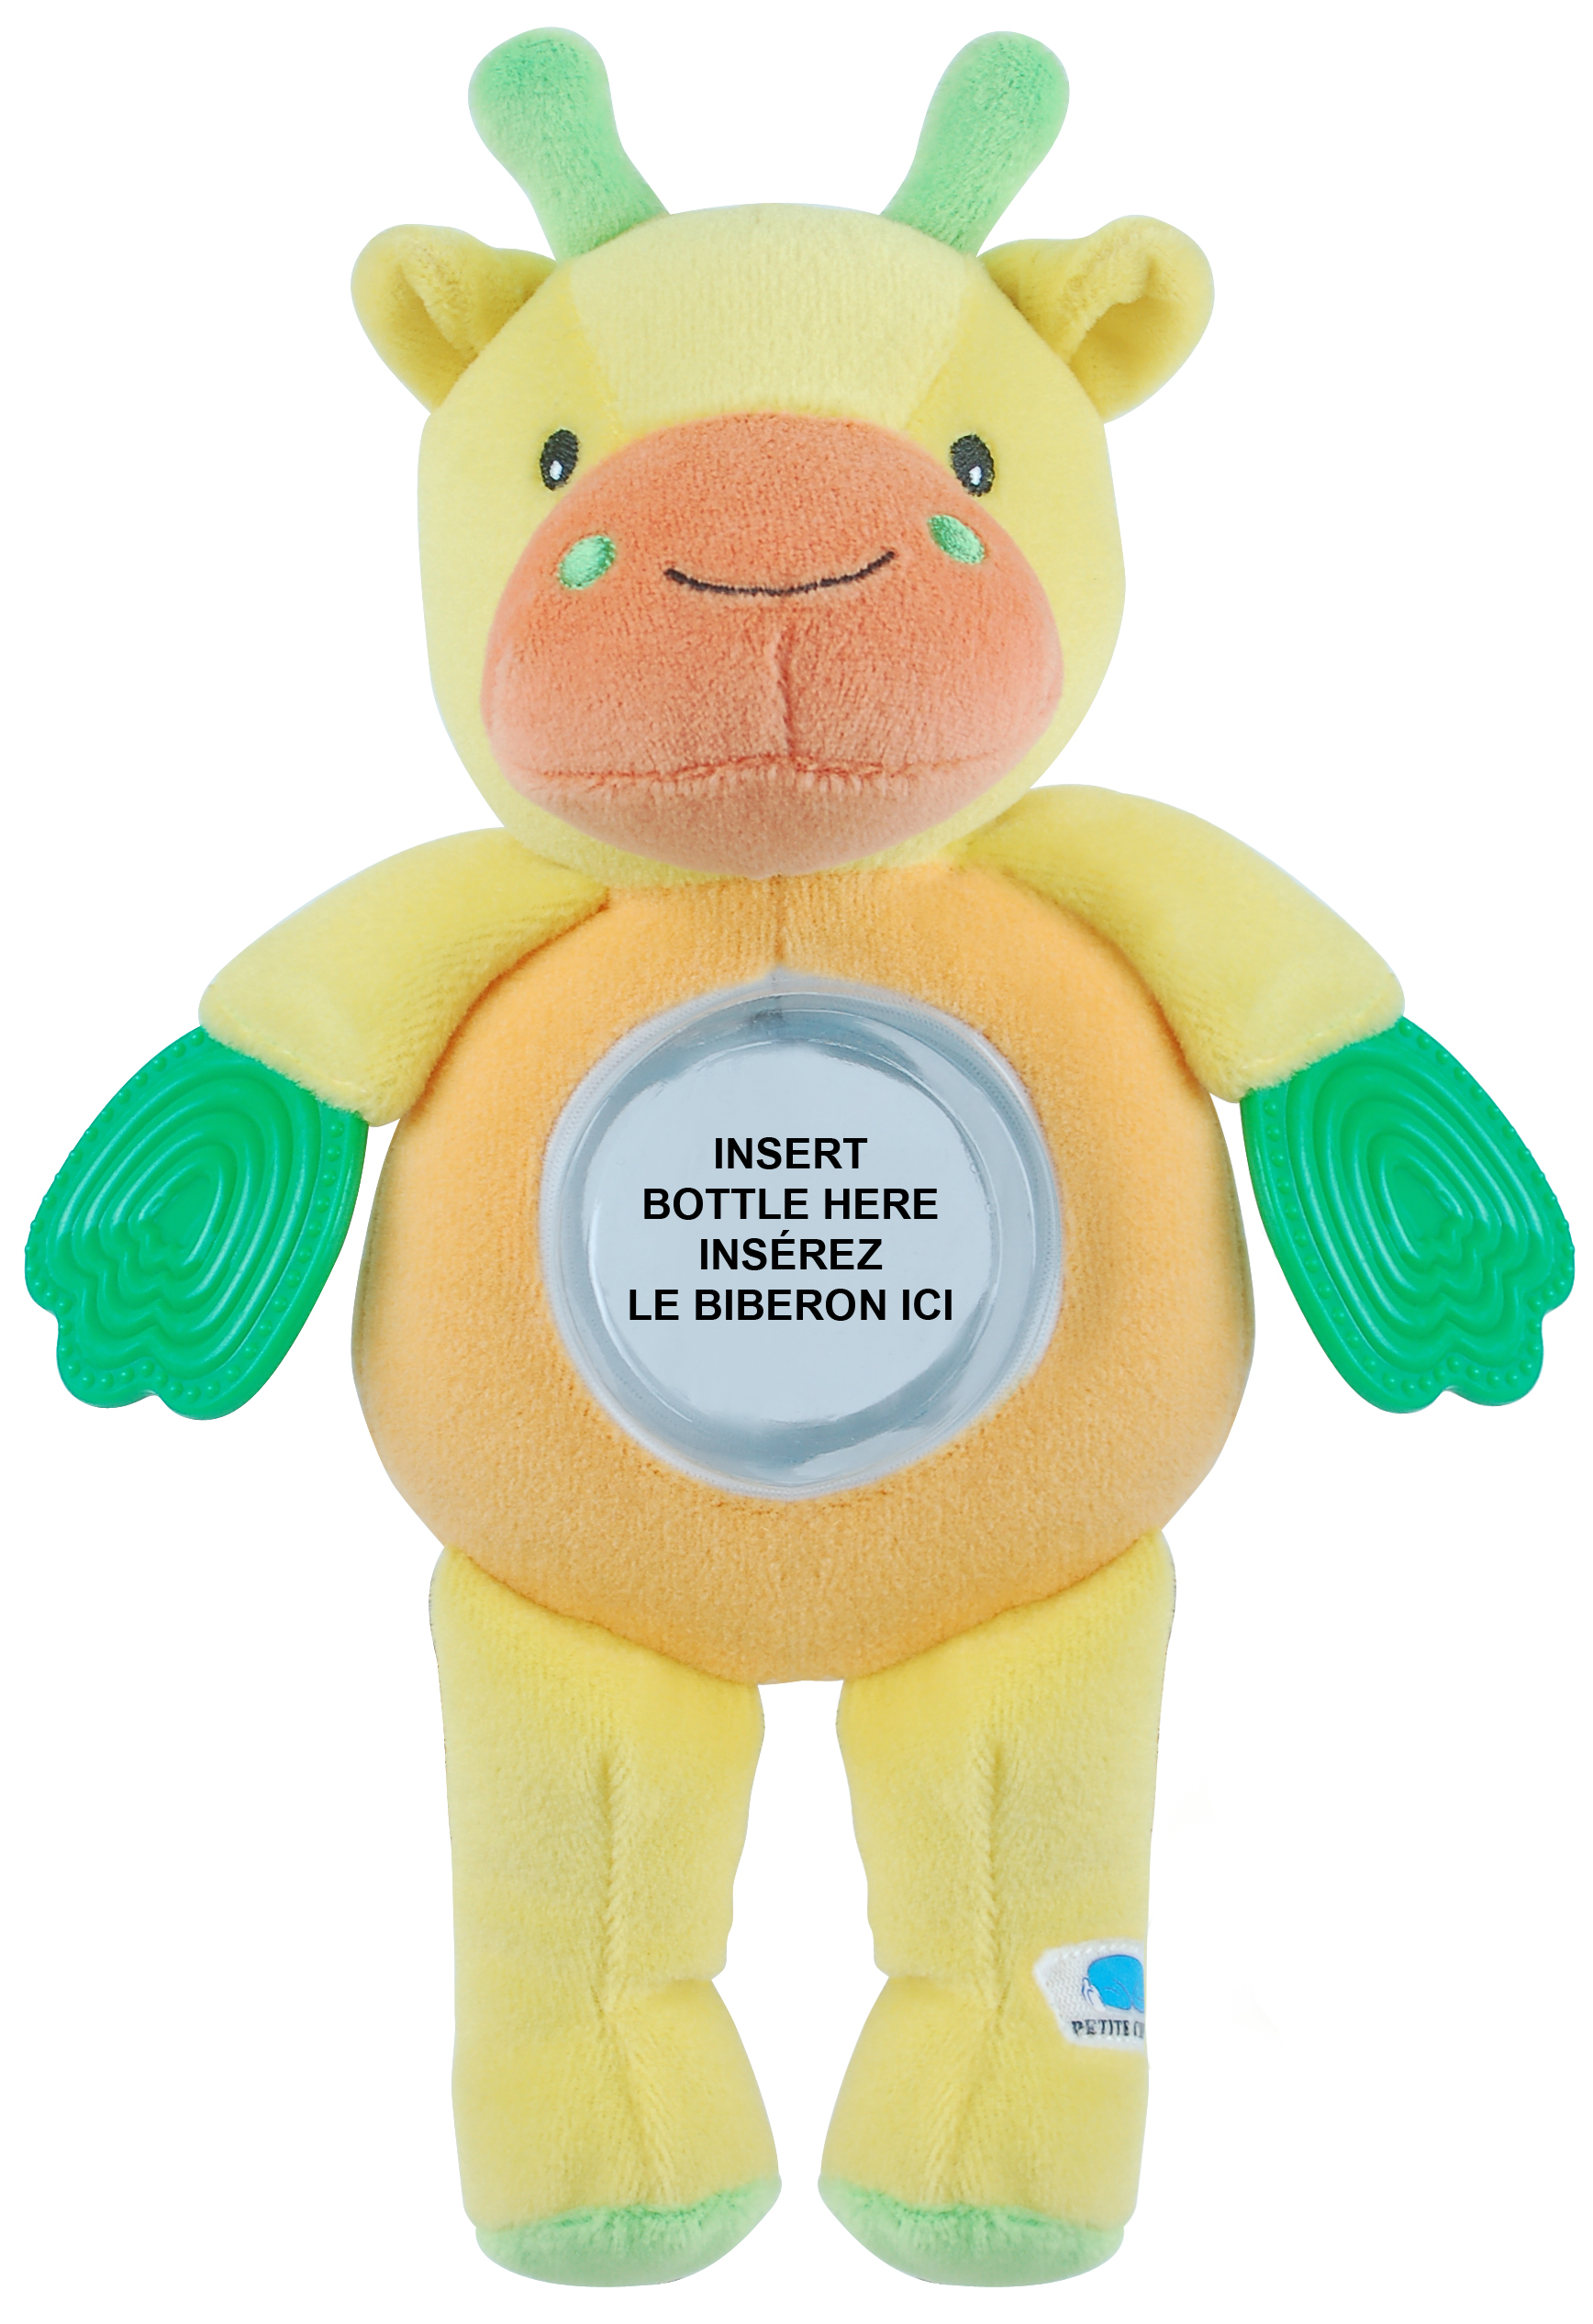 Baby Bottle Buddy The Ecobaby Company